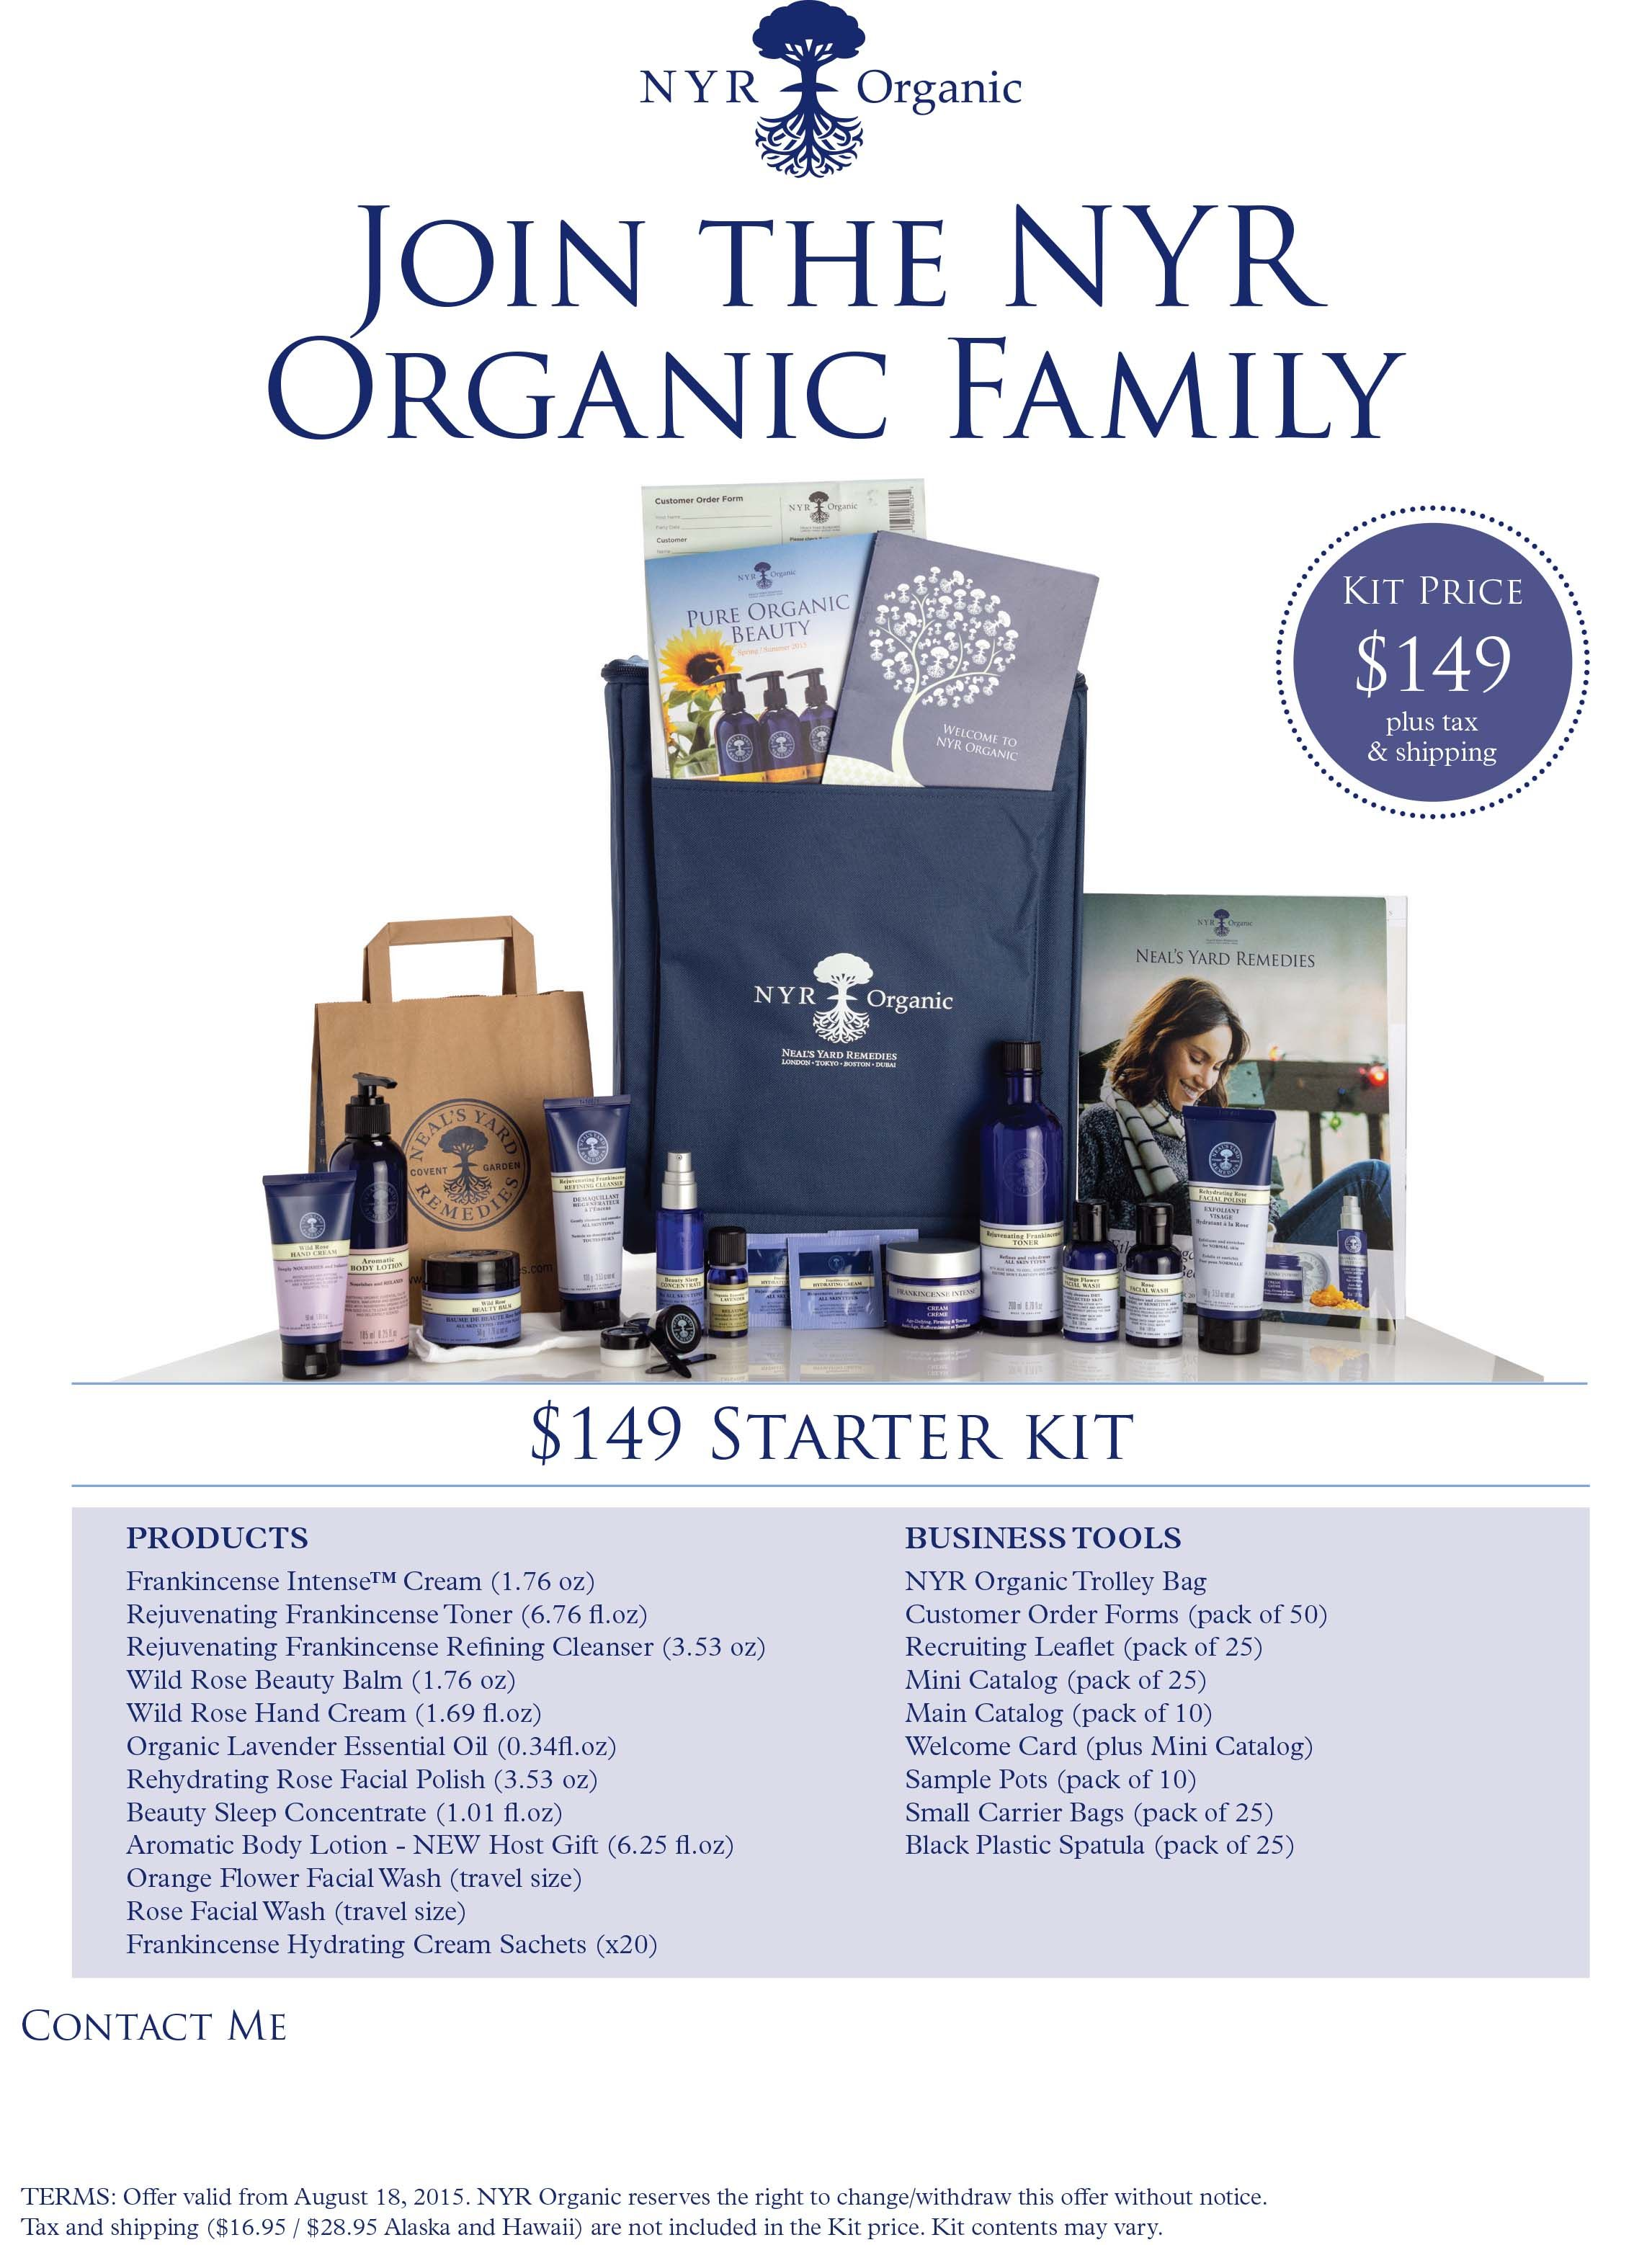 Make a difference while selling great organic skincare products! Visit my website for more info:  https://us.nyrorganic.com/shop/jenniferhoagland/area/become-a-consultant/